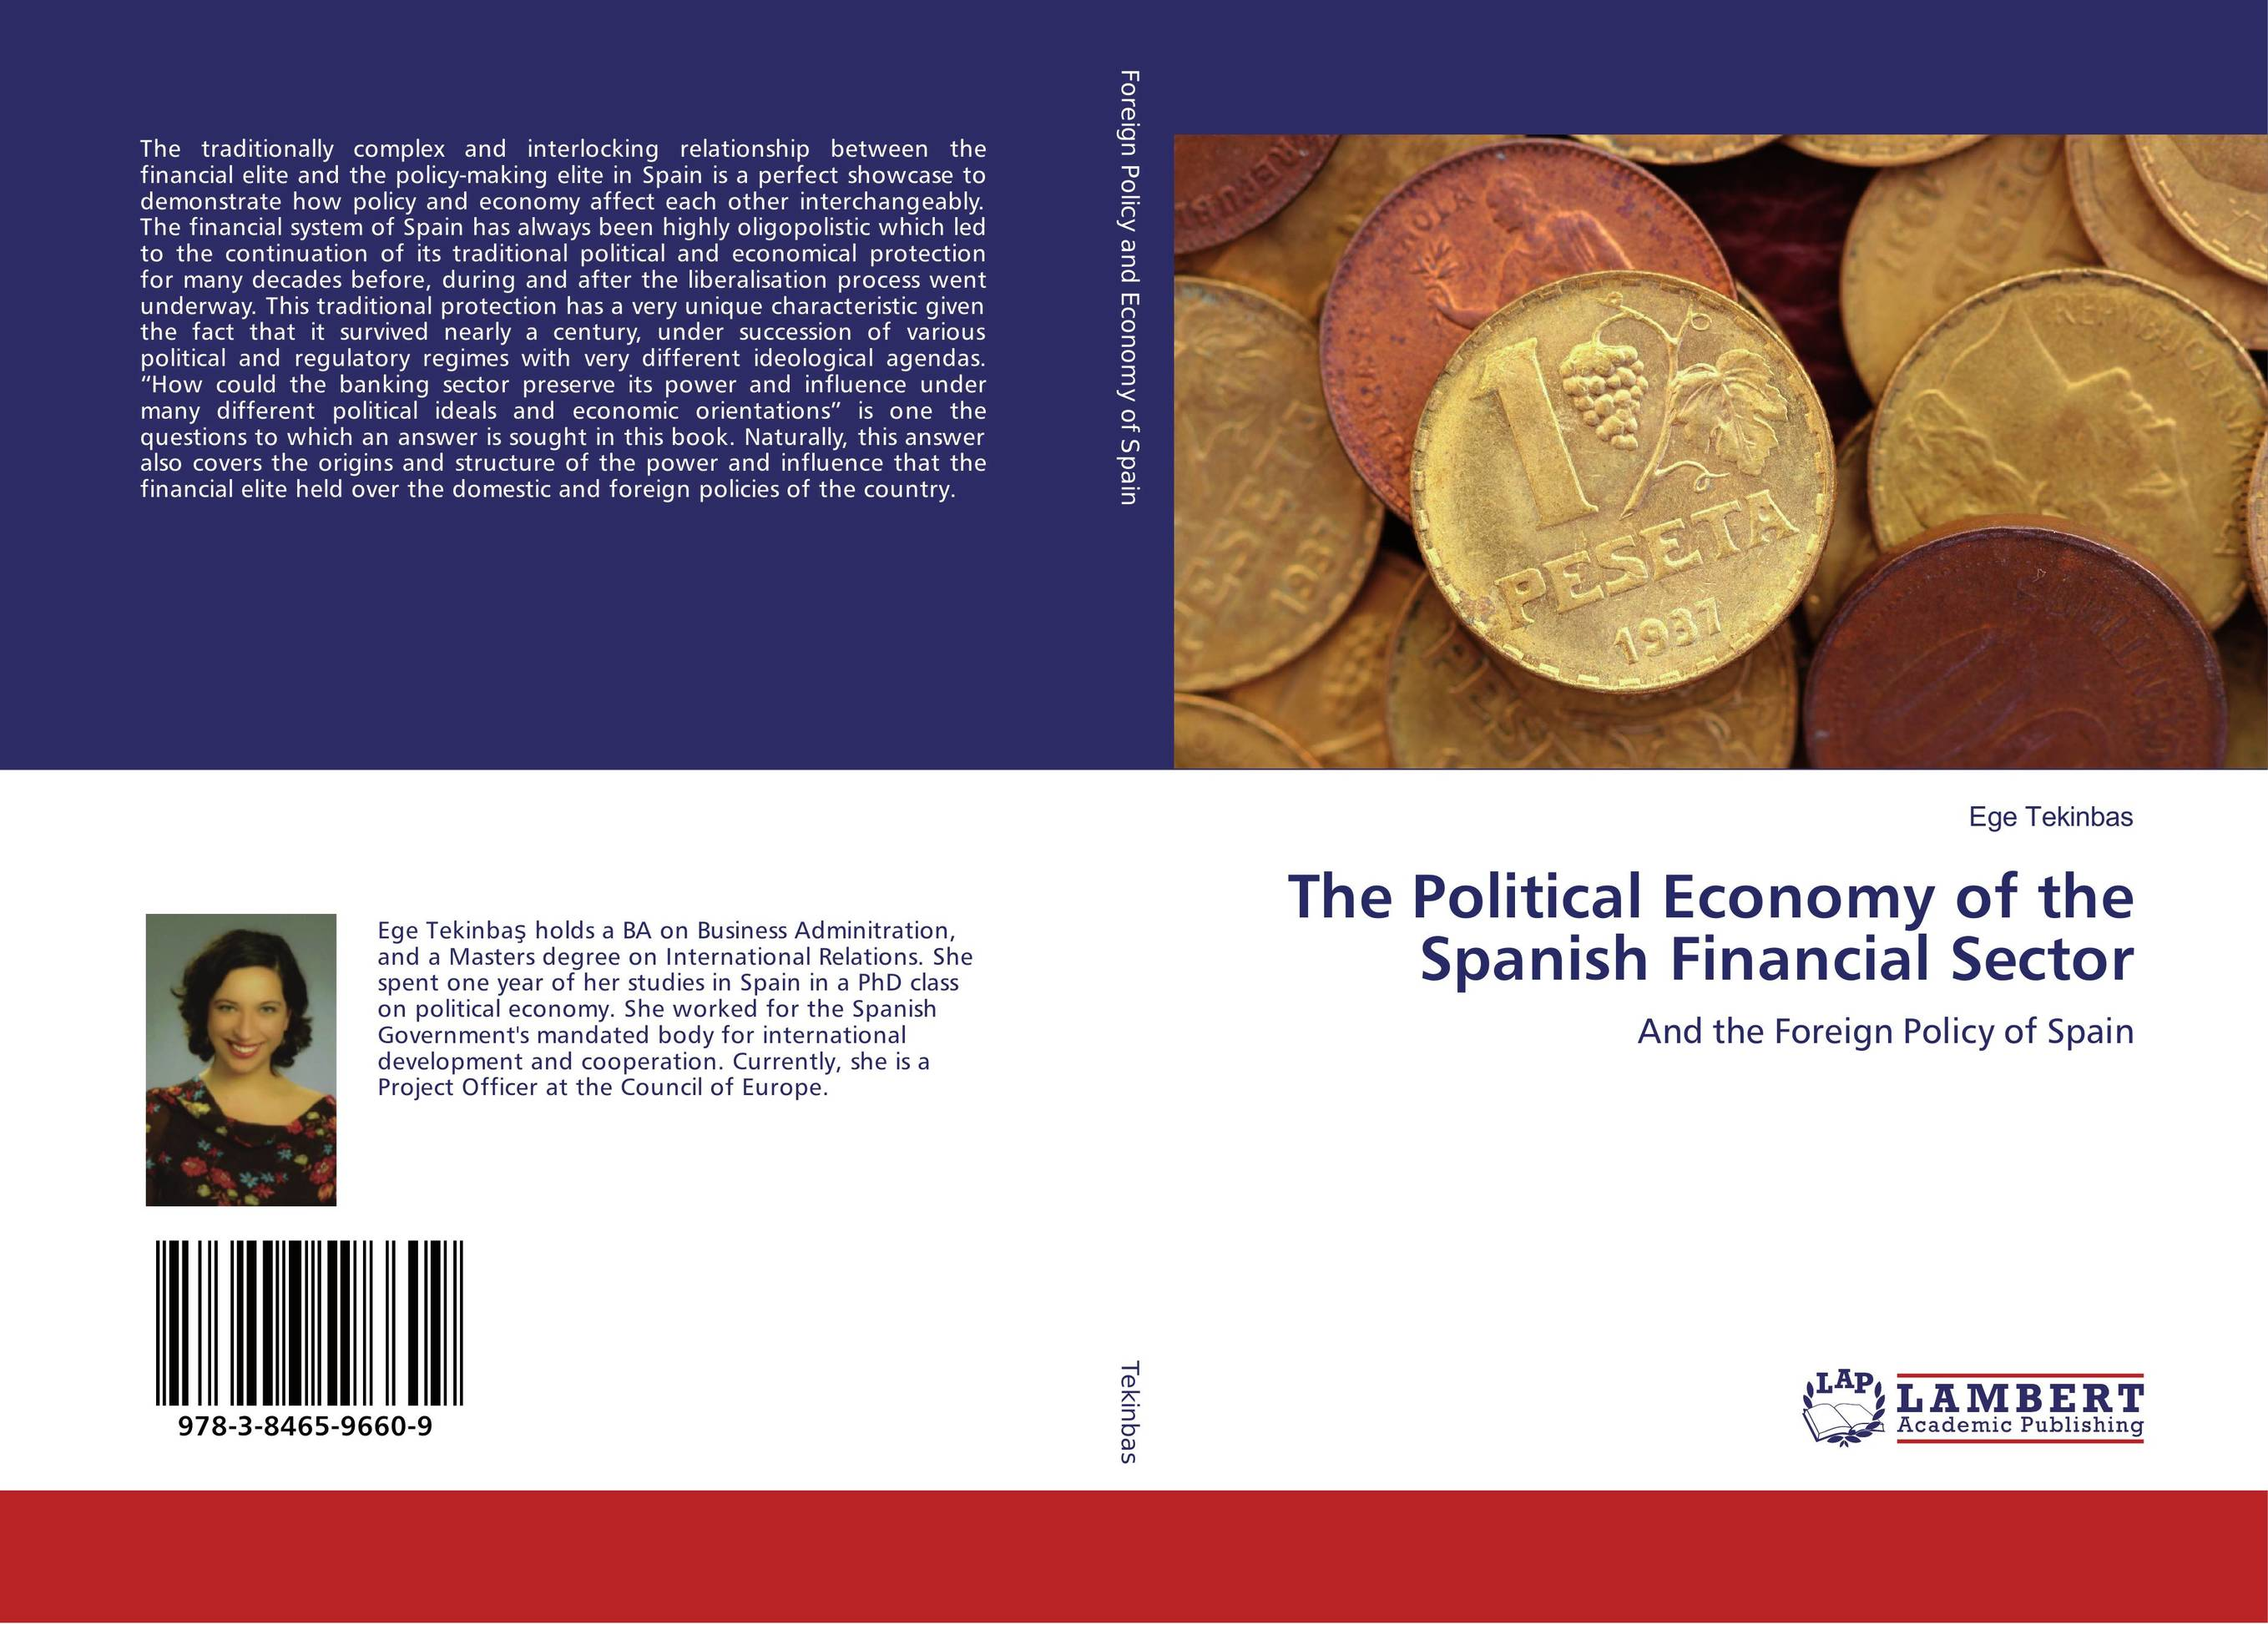 describe the political and economic characteristics Economic characteristics describe the conditions in a particular area such as a city, state or a country, etc.